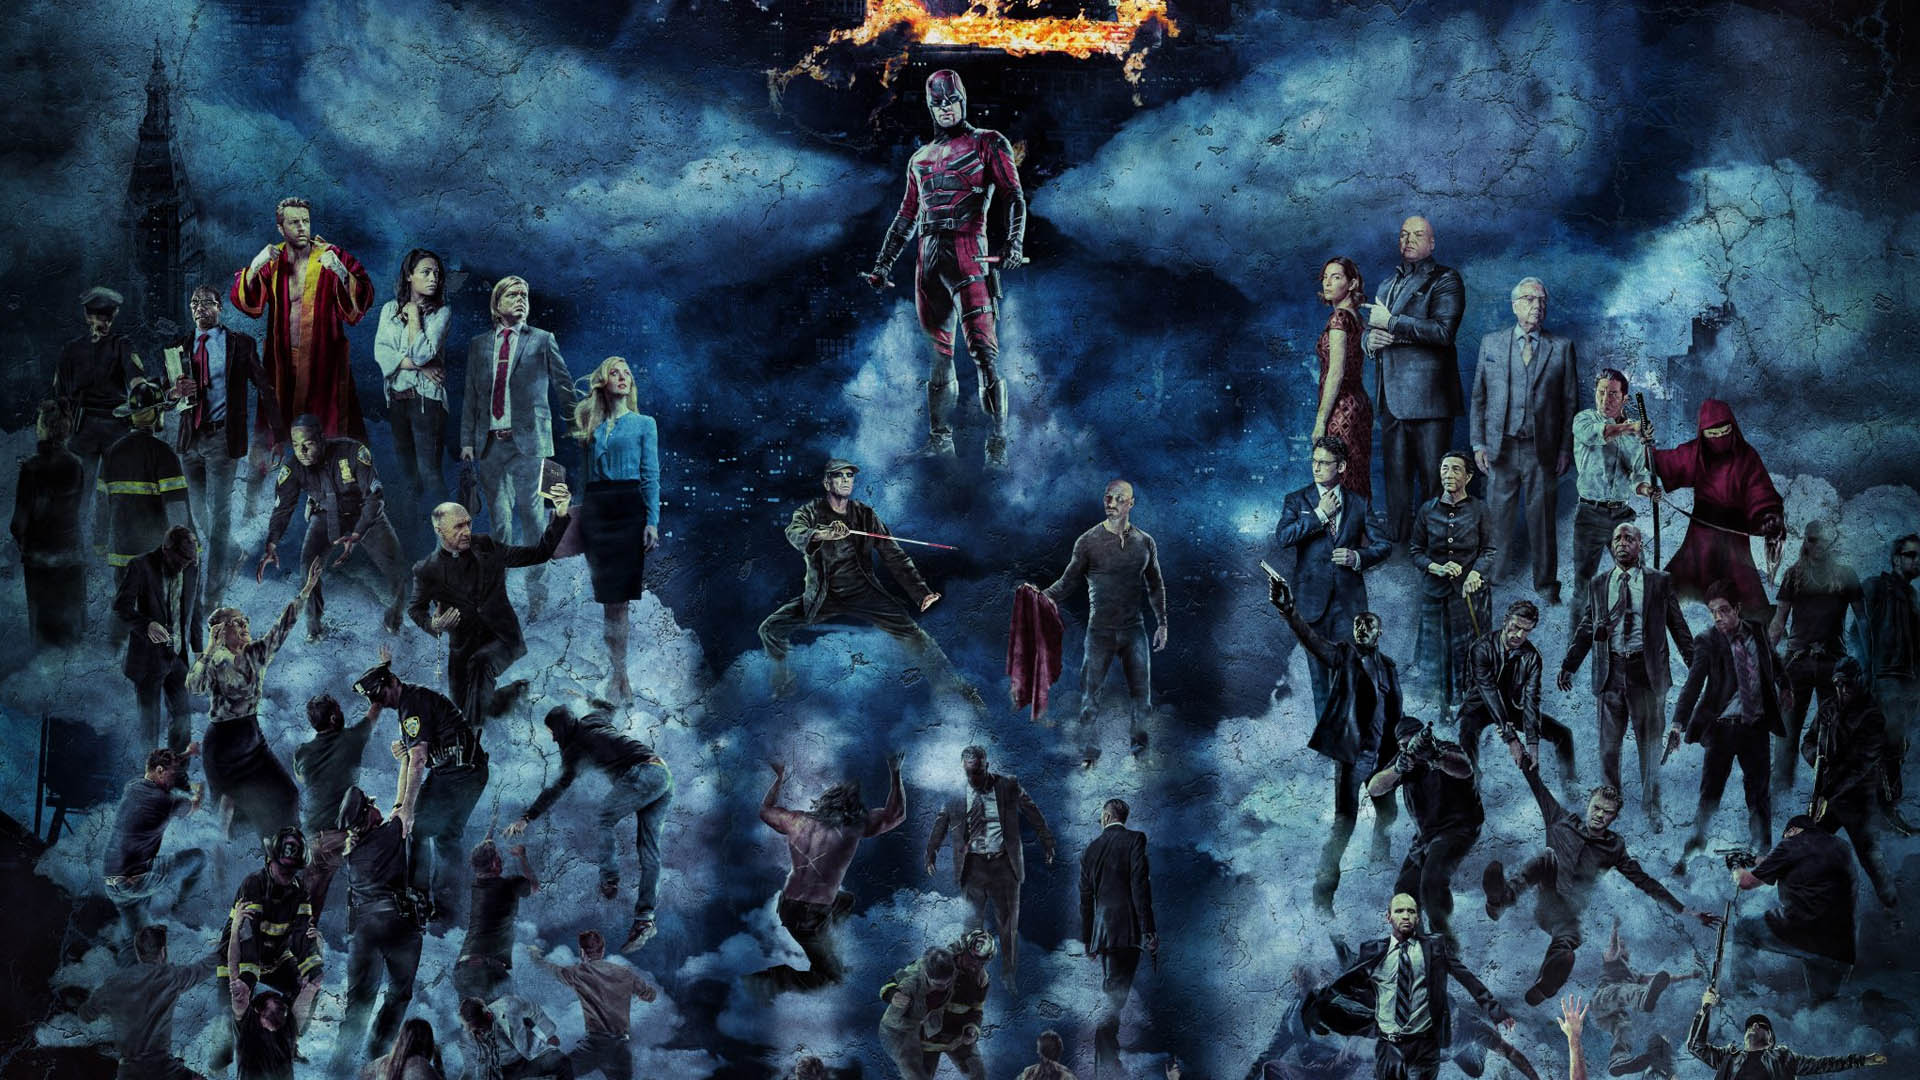 Daredevil Season 2 Daredevil Netflix Wallpaper 39403156